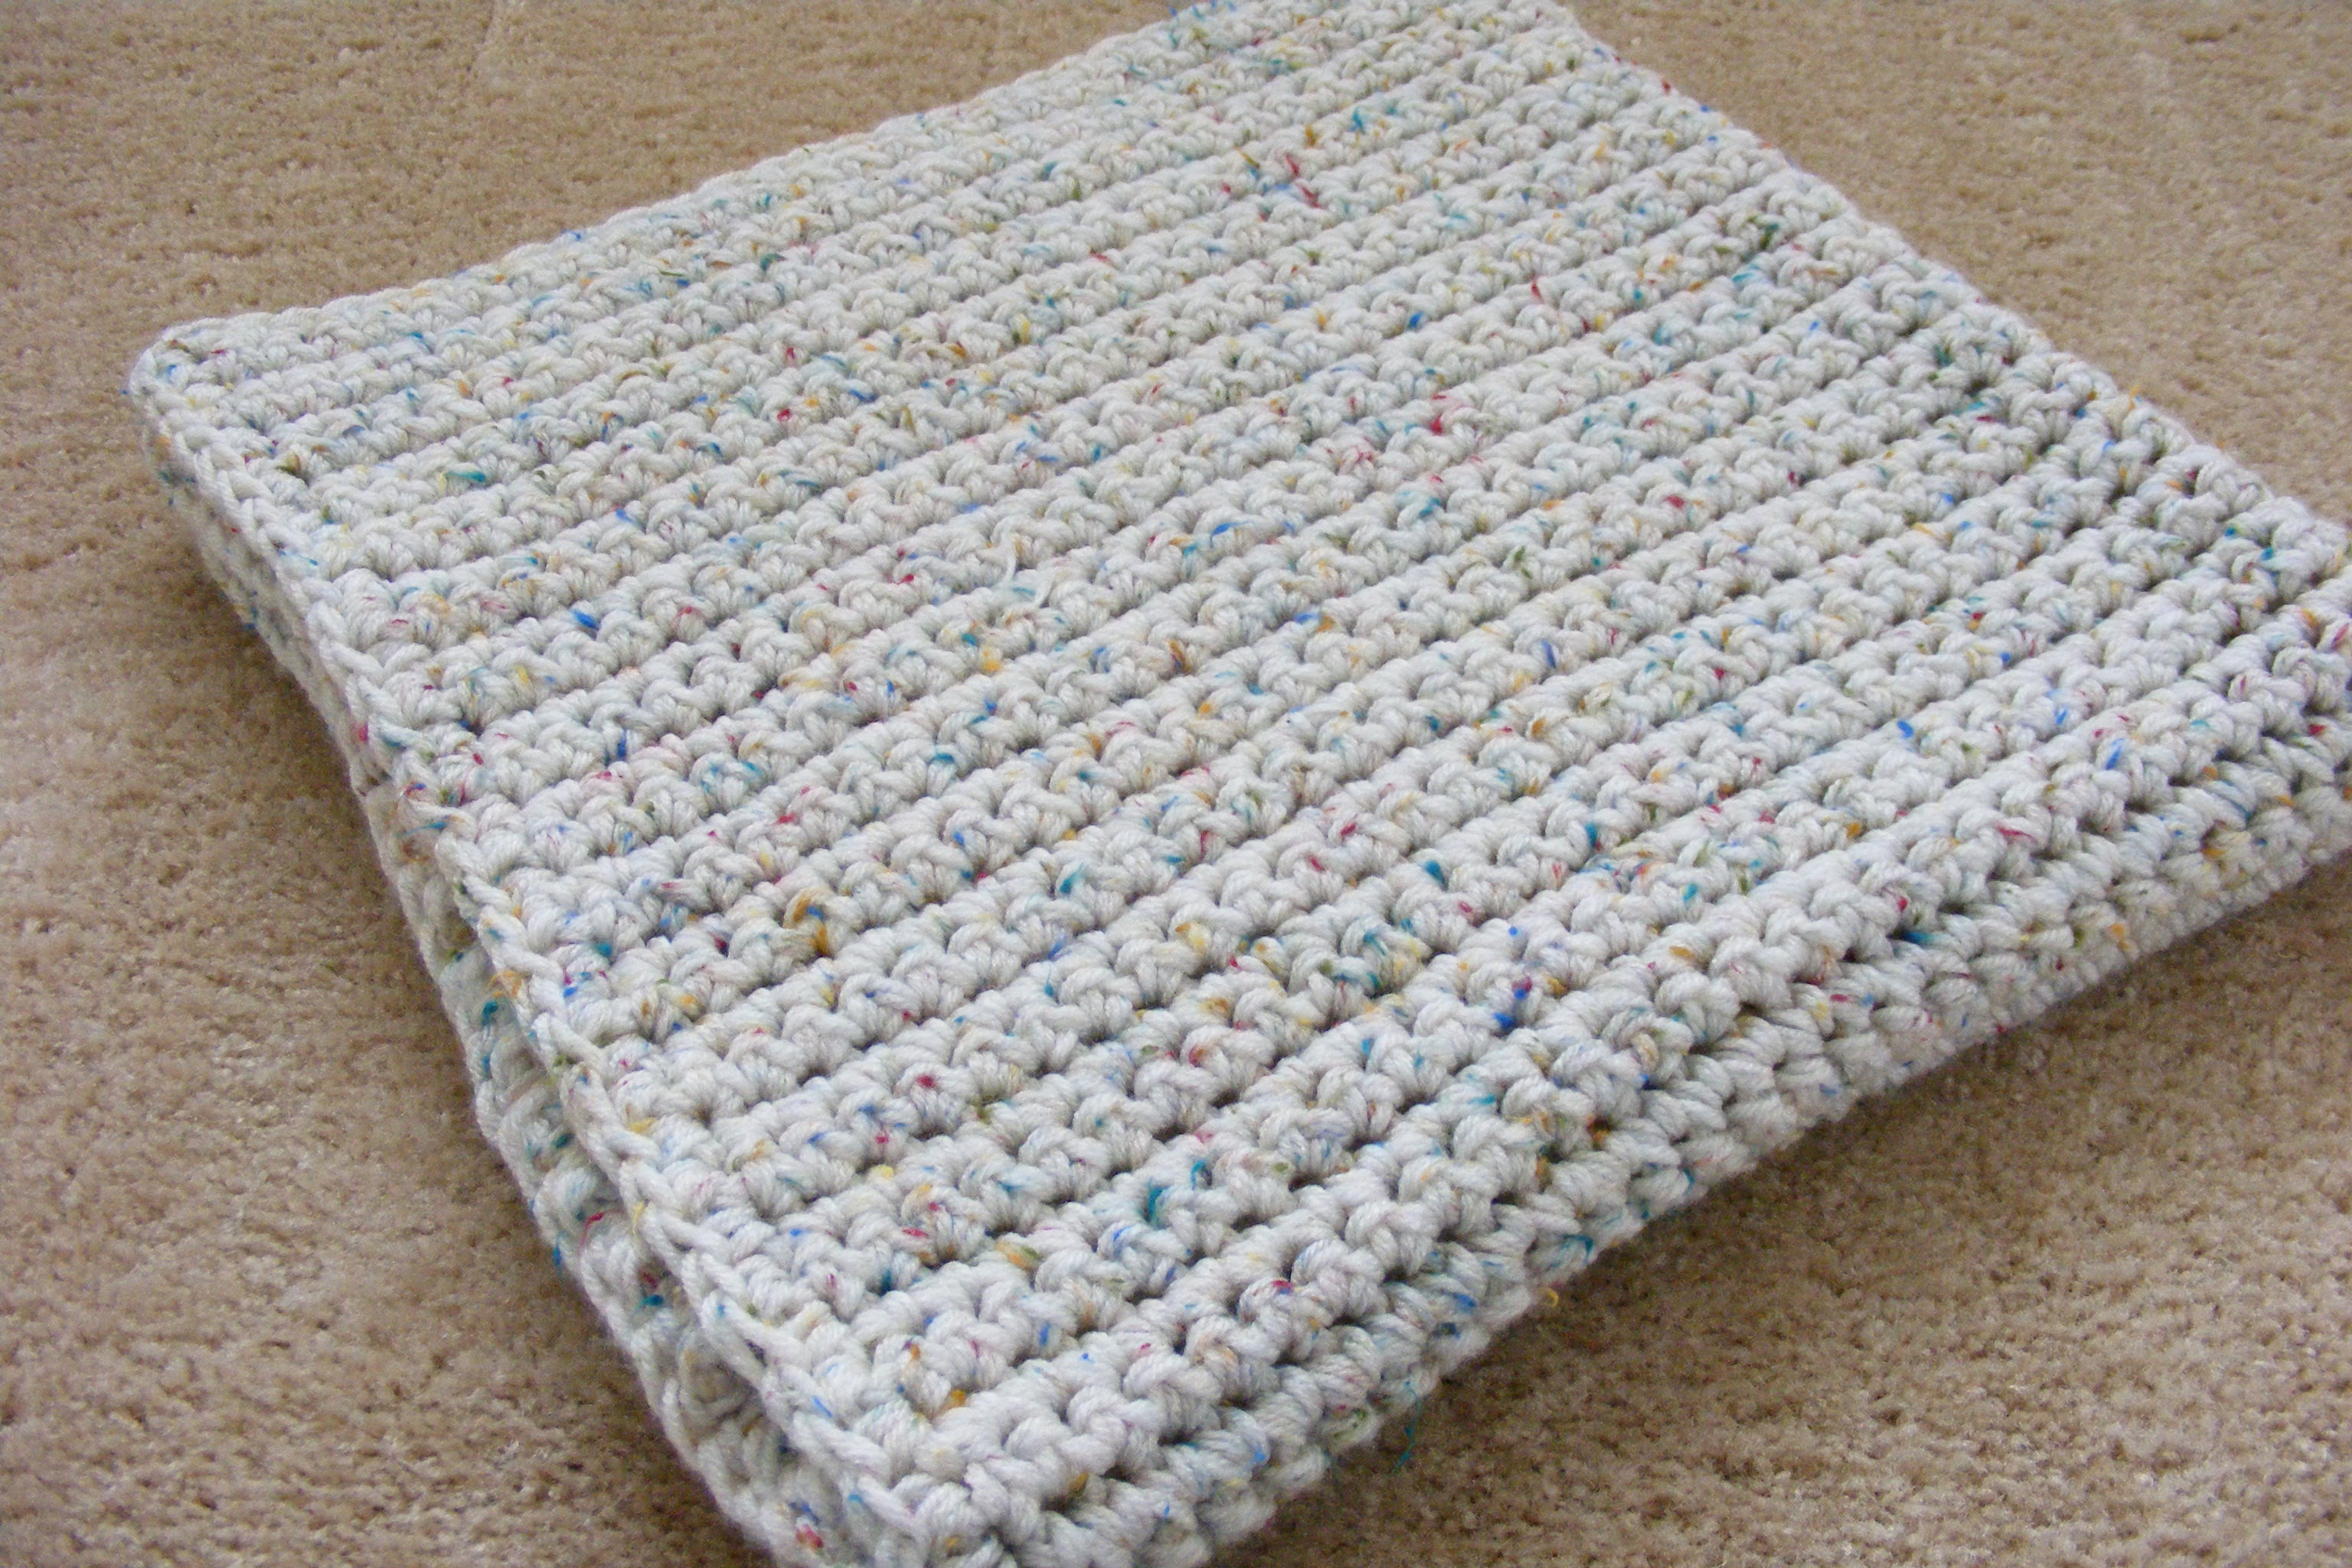 Crochet Throw Blanket Inspirational Single Crochet Baby Blanket Of Great 44 Pics Crochet Throw Blanket